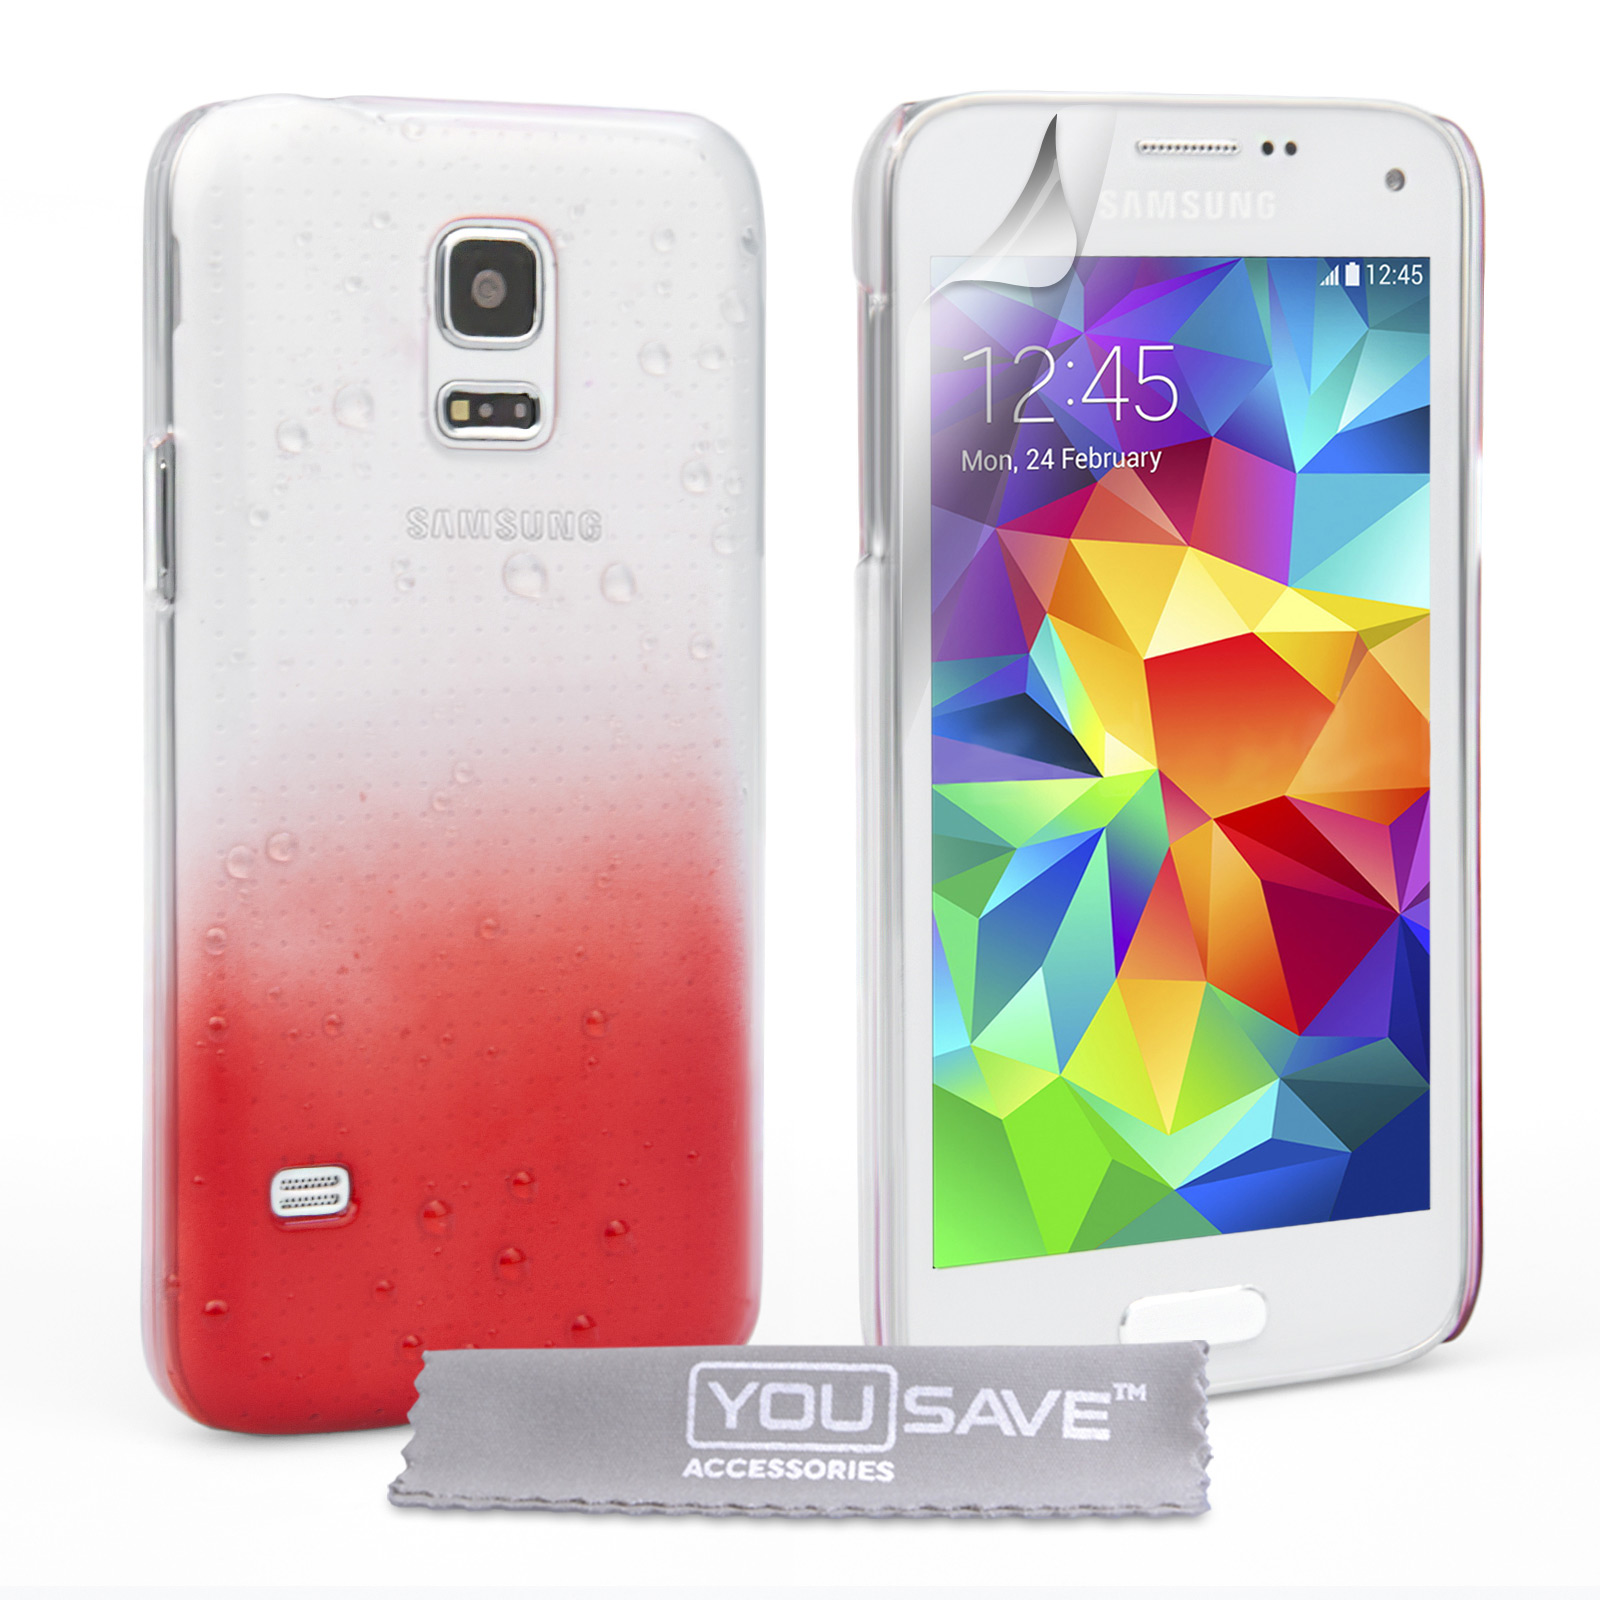 YouSave Samsung Galaxy S5 Mini Raindrop Hard Case - Red-Clear